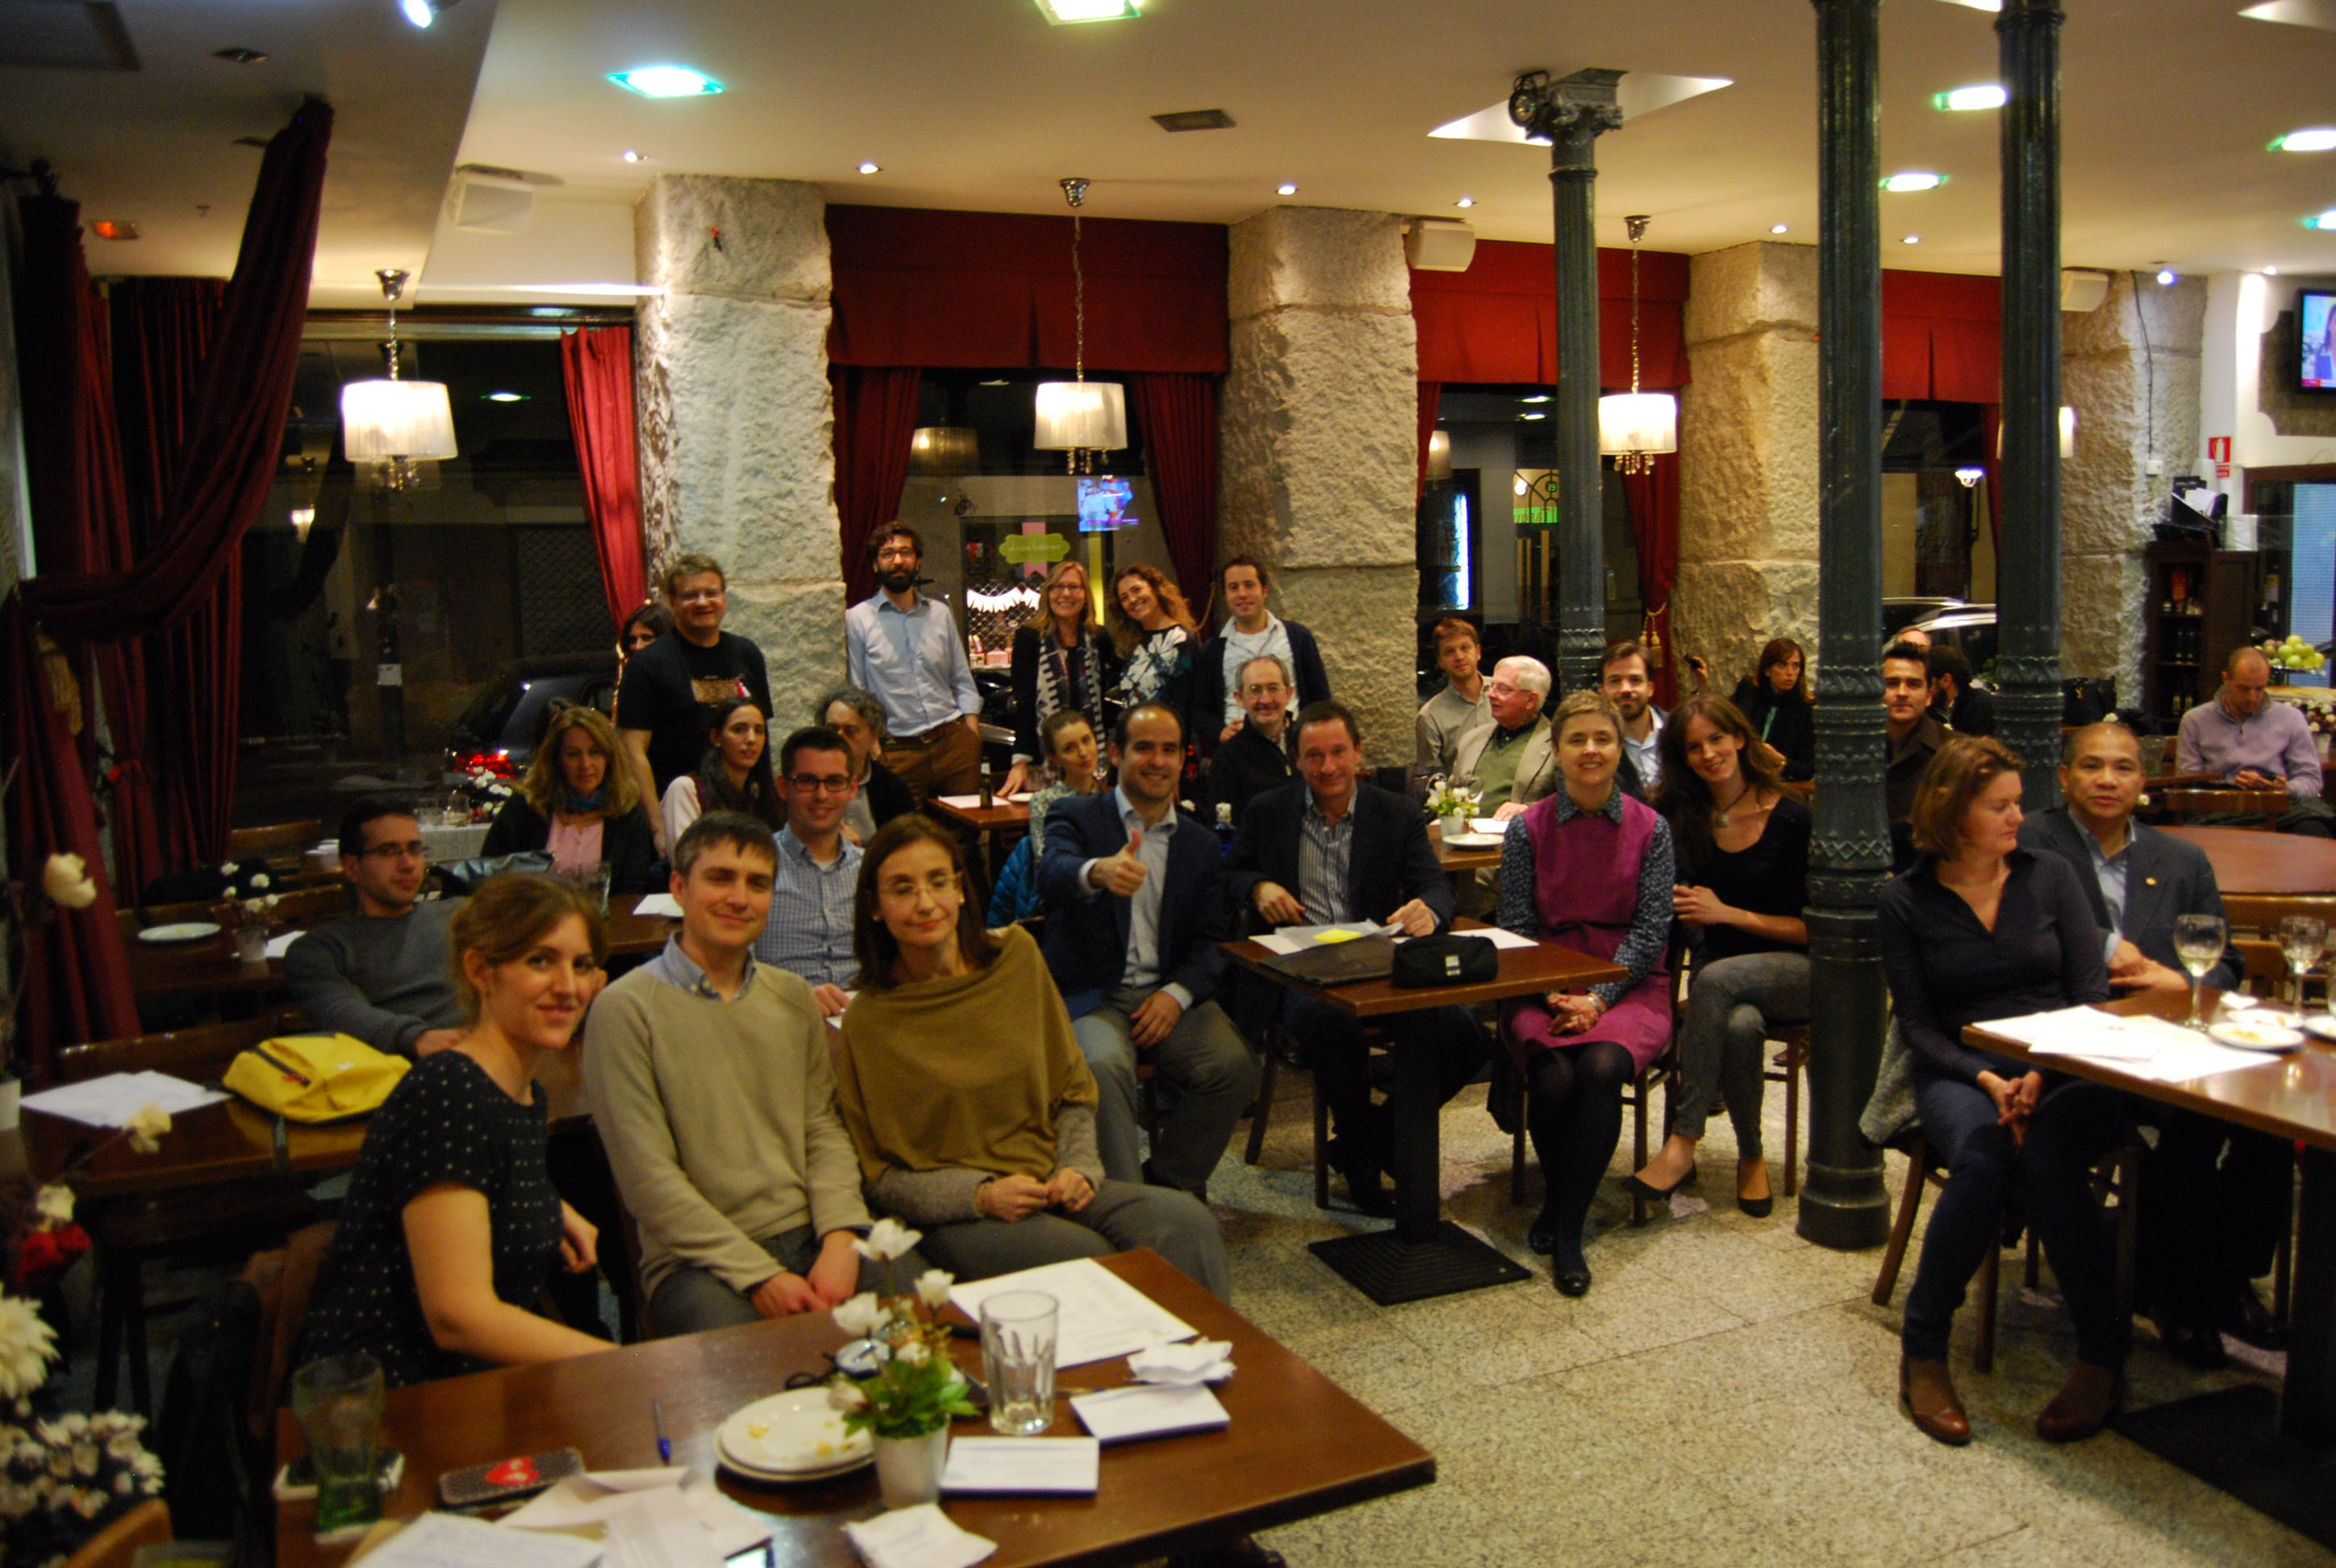 Camino Restaurant Madrid Toastmasters Madrid Public Speaking And Leadership Club Where